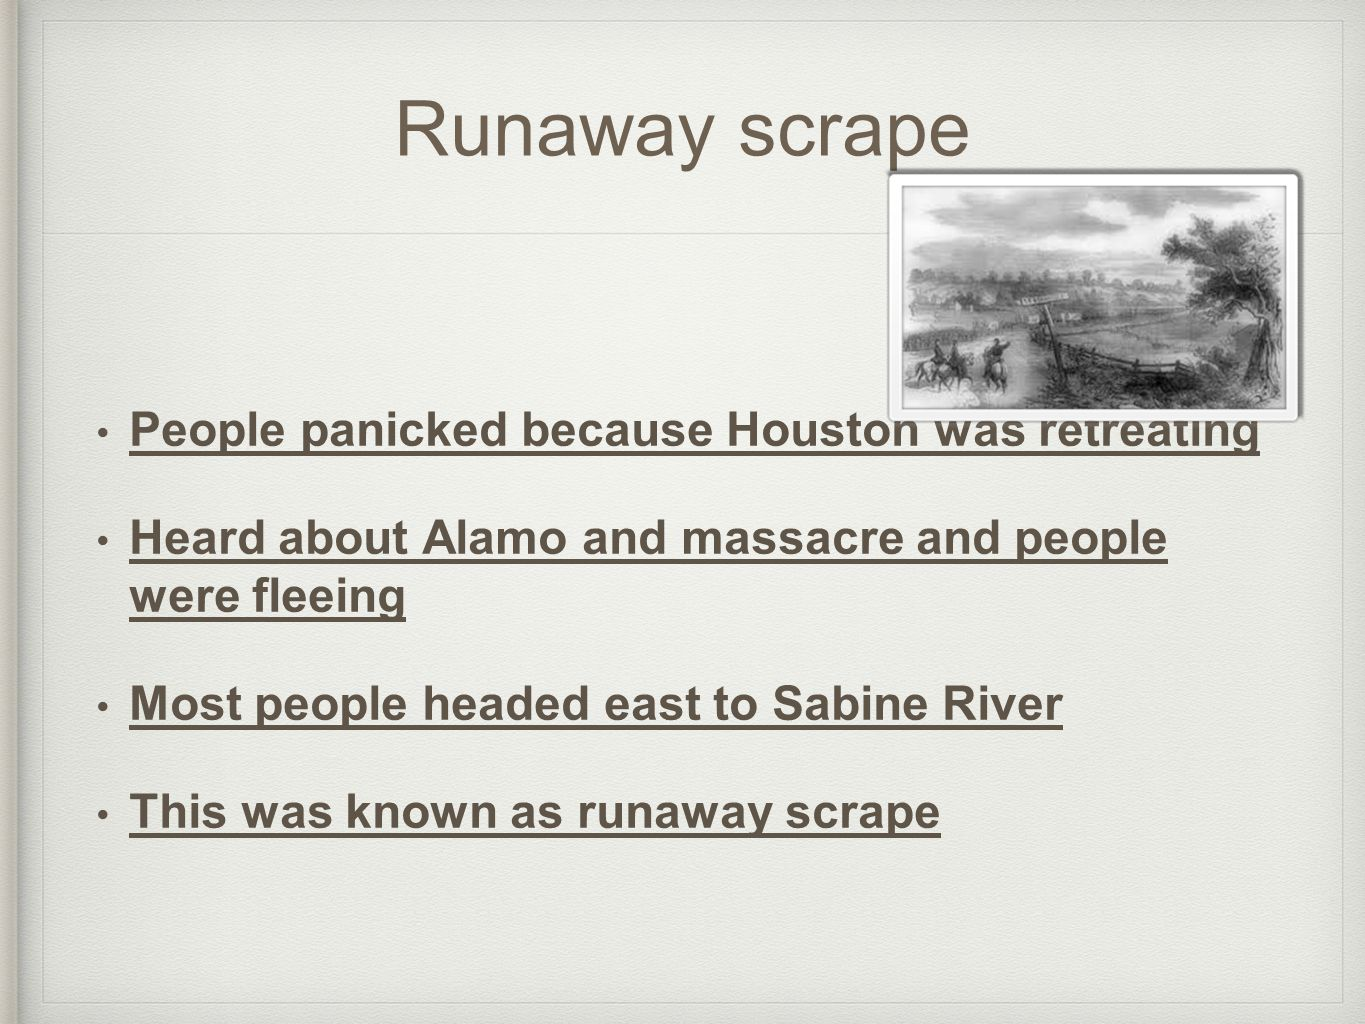 Runaway scrape People panicked because Houston was retreating Heard about Alamo and massacre and people were fleeing Most people headed east to Sabine